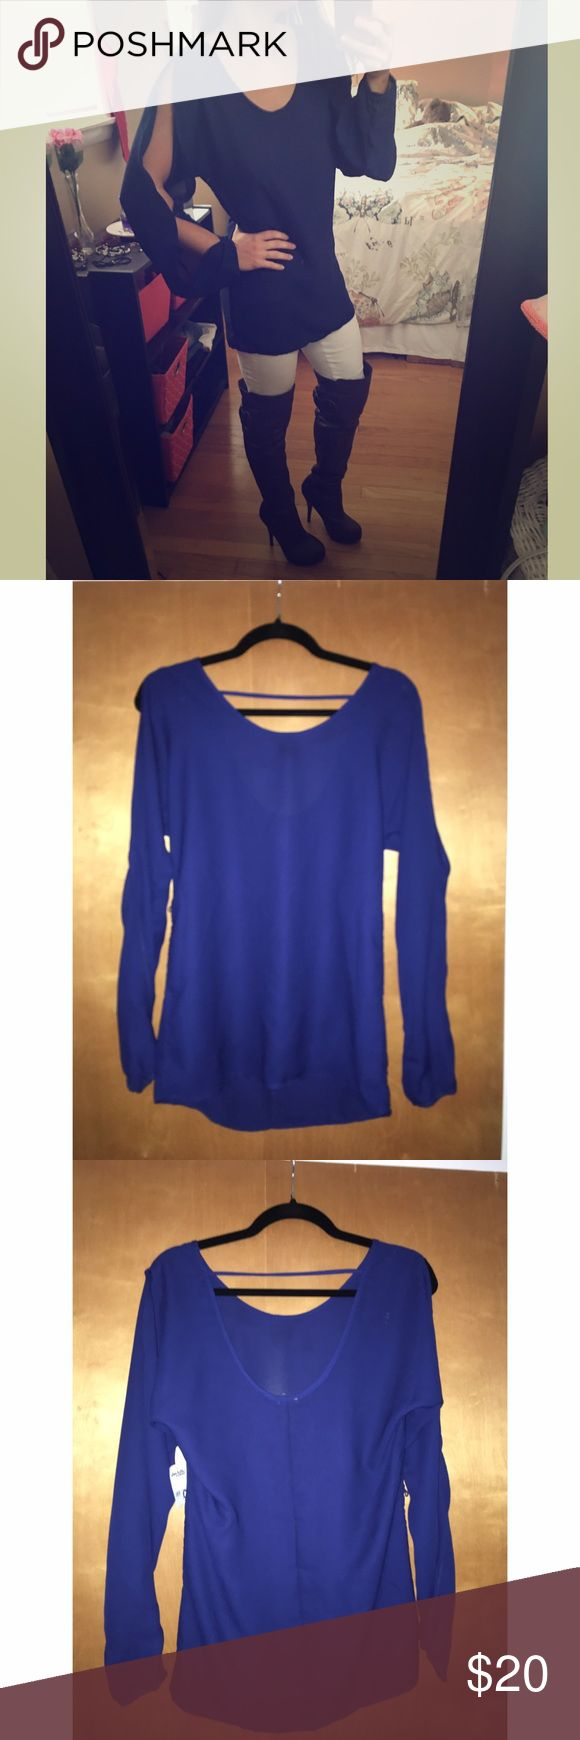 Royal Blue Blouse Long sleeve royal blue Blouse with two openings on the arms and scoop neck and back Tops Blouses